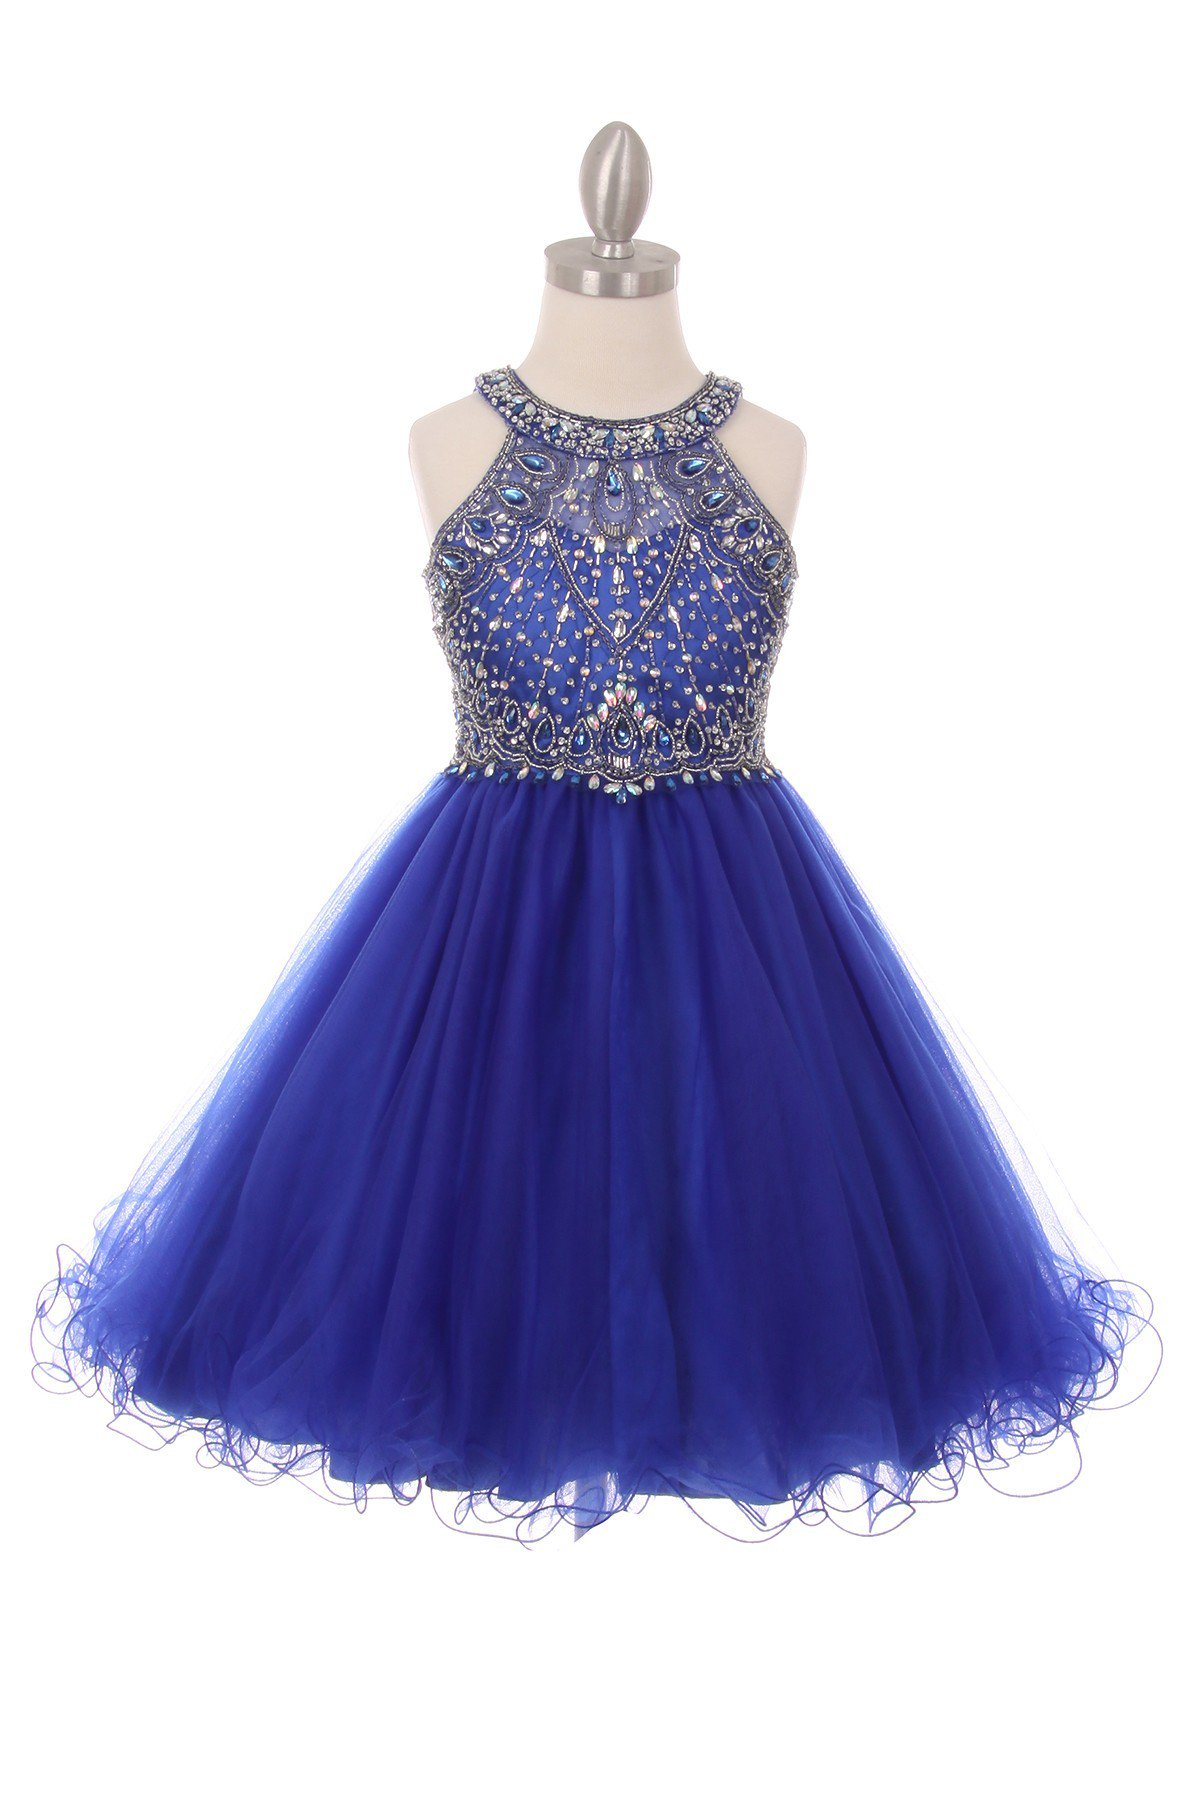 royal blue special occasion girl dresses